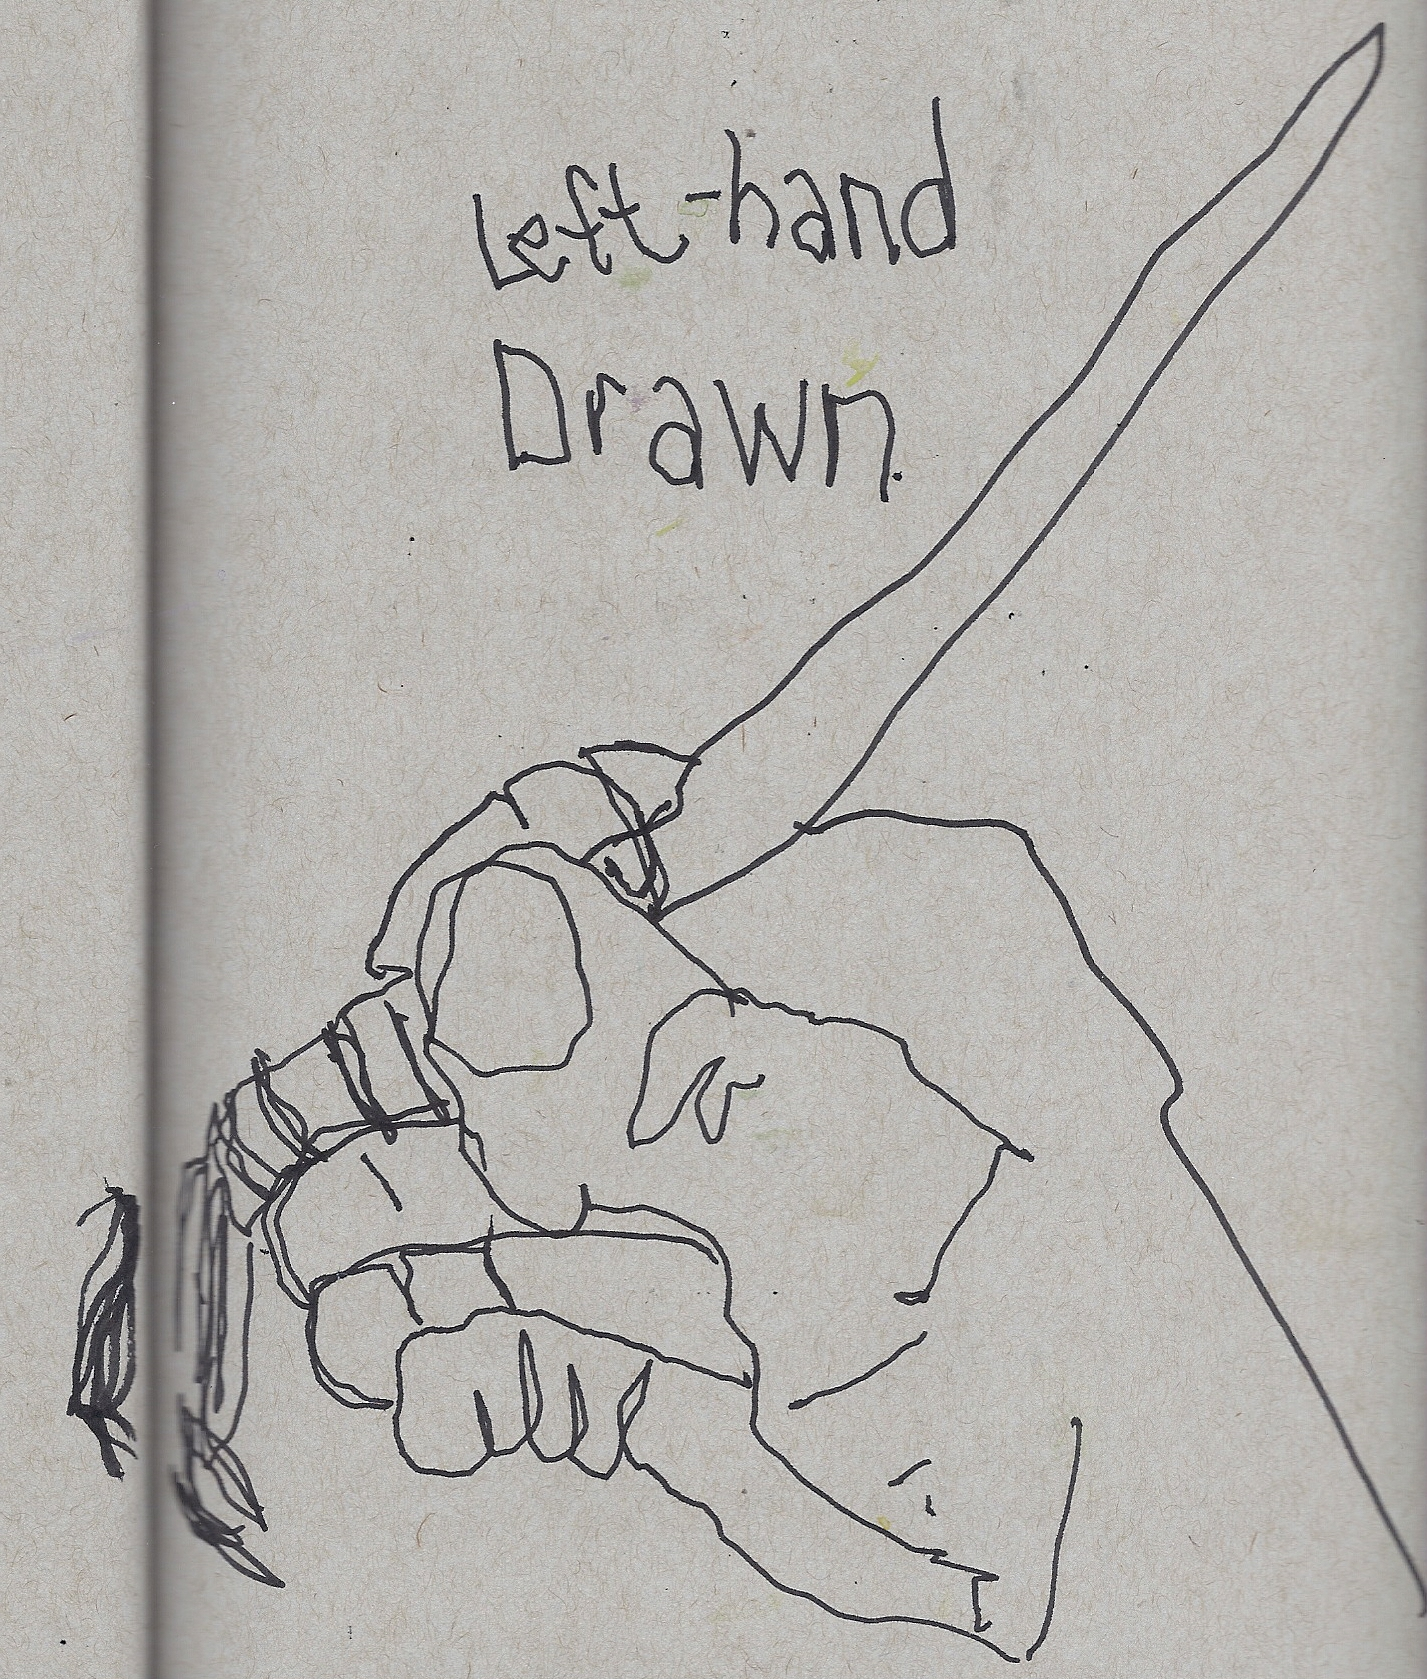 Demo of non-dominant hand